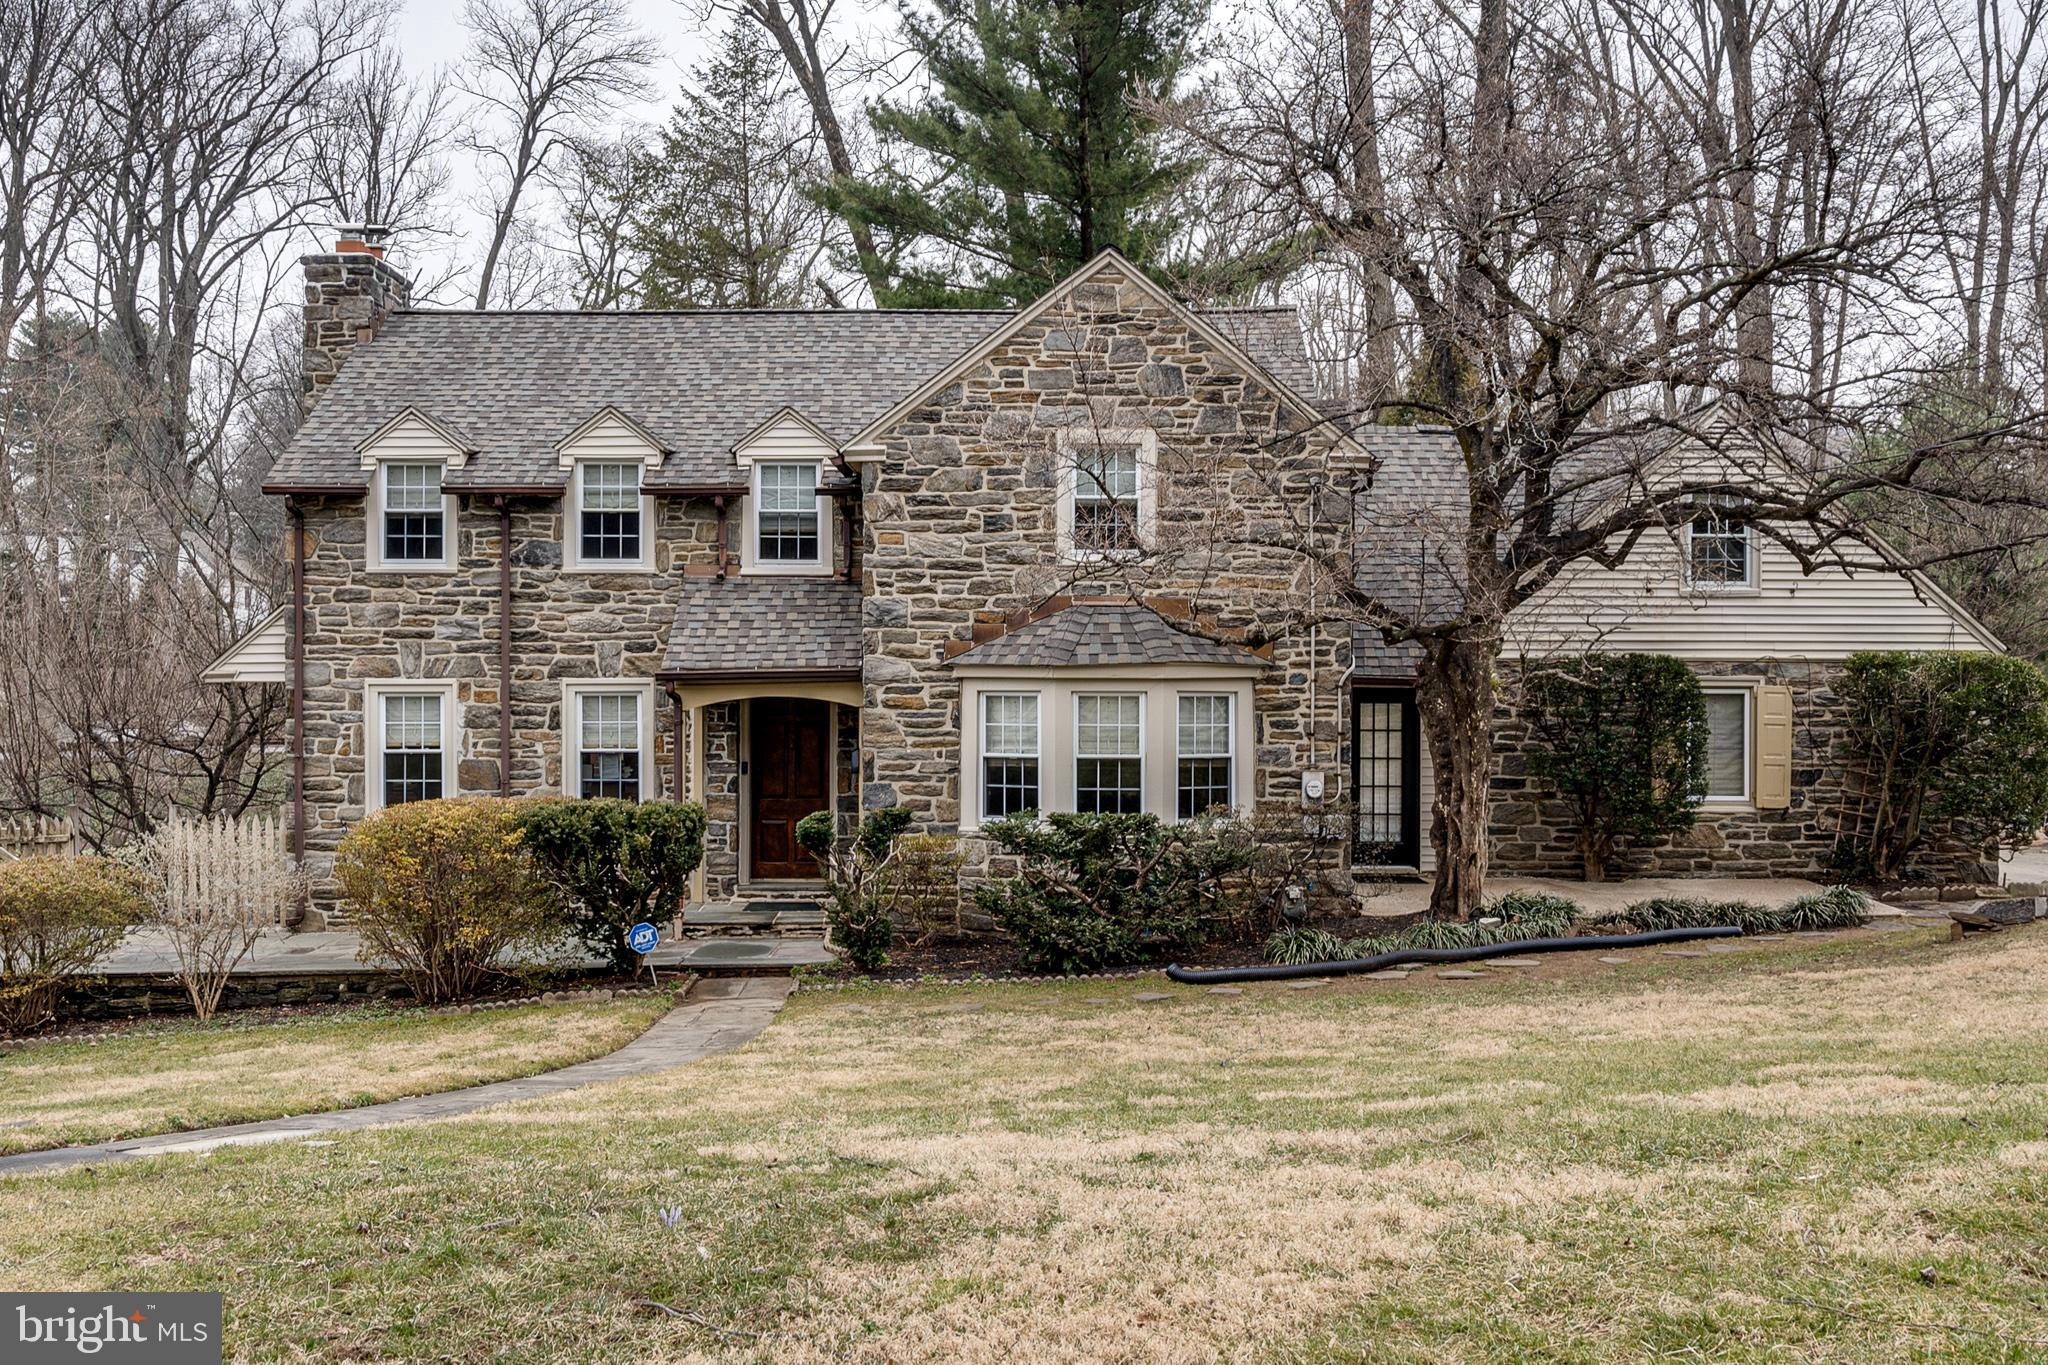 A private retreat in Penn Valley located on a quiet, tree-lined street. Enter into this classic stone Colonial renovated with a contemporary flair and be wowed with this modern and open floorplan. An inviting stone path leads you to this four-bedroom, four-and-a-half-bath stately home. Center hall foyer is open to the generously sized living room featuring a wood-burning fireplace and access to the screened-in three-season porch.   No detail was left behind while designing this brand new kitchen; featuring classic white shaker cabinetry, a free-standing island/breakfast bar for casual dining, quartz countertops, high-end stainless steel appliances, and a custom tiled backsplash. This kitchen is complete with a double-door pantry showcasing floor-to-ceiling shelves. Open to the kitchen is both the breakfast room and dining room which feature large bay windows, as well as the great room which includes a gas fireplace and wine refrigerator. A brand new powder room completes the first floor.  The second floor offers a spacious deck overlooking the grounds located at the top of the main staircase. The primary bedroom ensuite is highlighted by a large, spa-inspired bathroom with freestanding tub, oversized glass stall shower, double vanity, and expansive walk-in closet custom built-ins. Two additional bedrooms include generous closet space, with access to the full hall bathroom. The fourth bedroom features vaulted ceilings and an ensuite which would make a perfect fourth bedroom, in-law suite, or home office with access to the back stairwell. For convenience, there is a second-floor laundry room and a cedar closet.   The walkout lower level of this home has beautiful wood-like flooring throughout and features an additional recreation room, full bathroom, an abundance of storage space, providing the potential for an additional bedroom or home office. An additional outdoor entertaining patio and built-in stone fire pit can be accessed from the sliding doors.  Situated in th